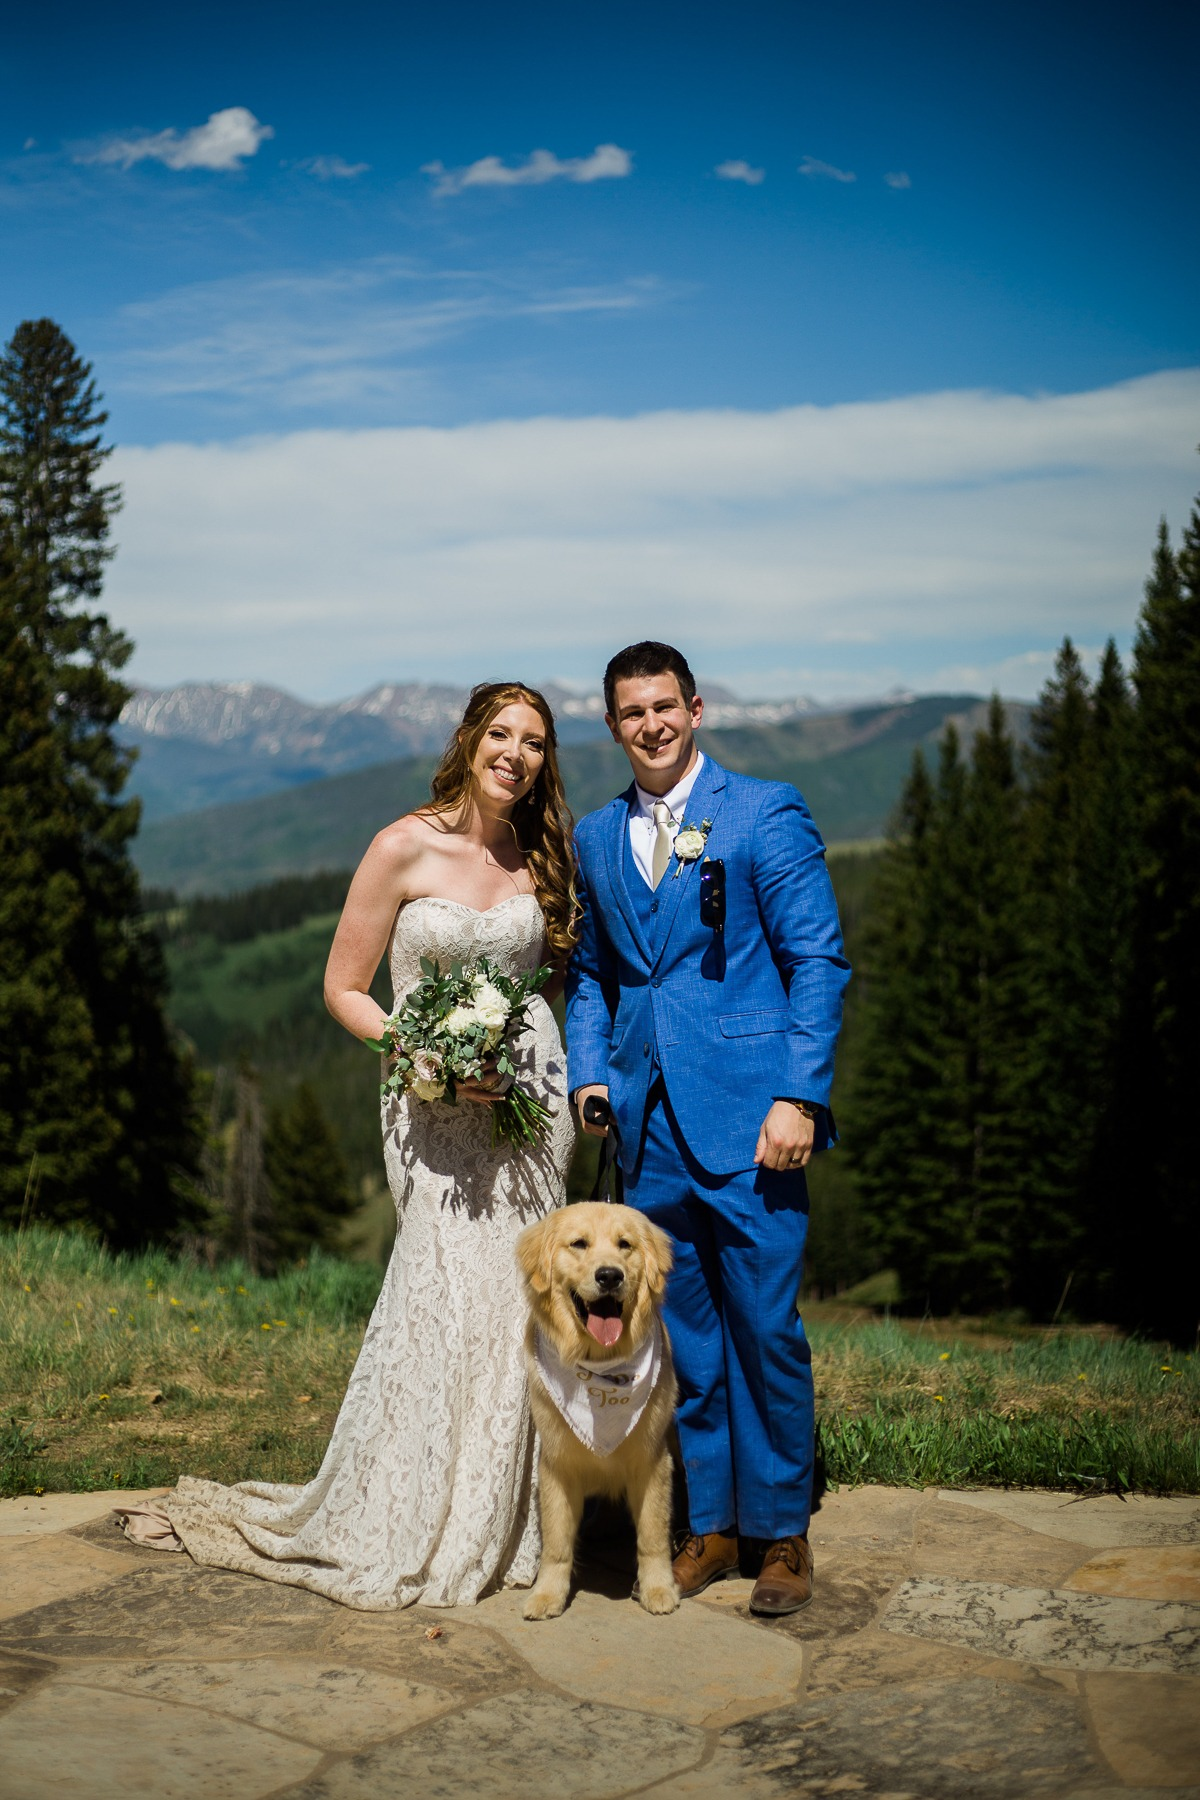 Scenic wedding in Colorado